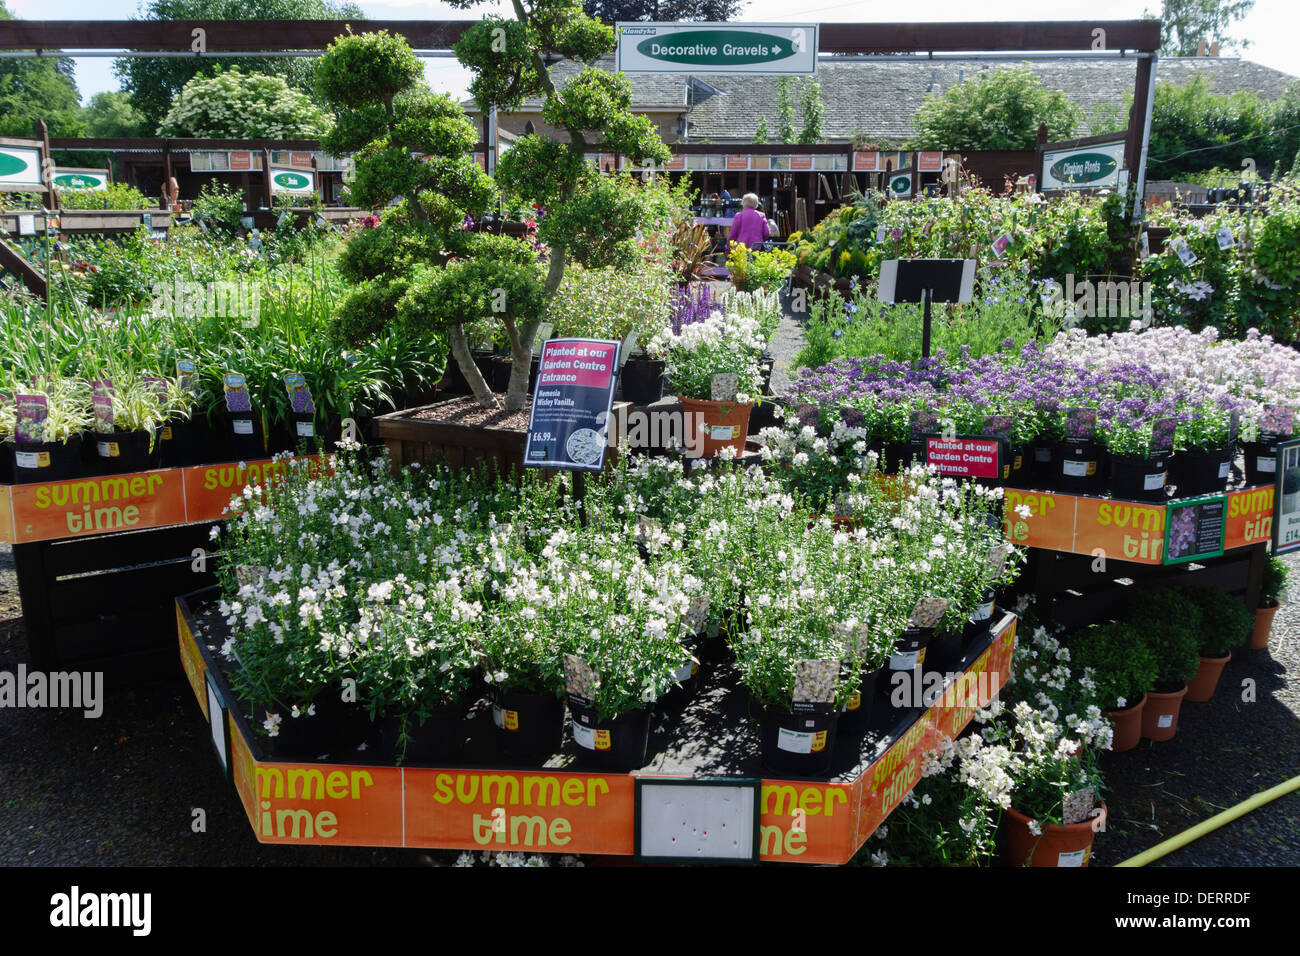 Pretty Outdoor Bedding Plants For Sale In A Garden Centre Uk Midsummer  With Fair Outdoor Bedding Plants For Sale In A Garden Centre Uk Midsummer With Charming Garden Art Statues Also Garden Sale Clearance In Addition Revolution Parsonage Gardens And Garden Awnings And Sails As Well As Maggots In Garden Additionally Bespoke Jewellery Hatton Garden From Alamycom With   Charming Outdoor Bedding Plants For Sale In A Garden Centre Uk Midsummer  With Pretty Garden Awnings And Sails As Well As Maggots In Garden Additionally Bespoke Jewellery Hatton Garden And Fair Outdoor Bedding Plants For Sale In A Garden Centre Uk Midsummer Via Alamycom